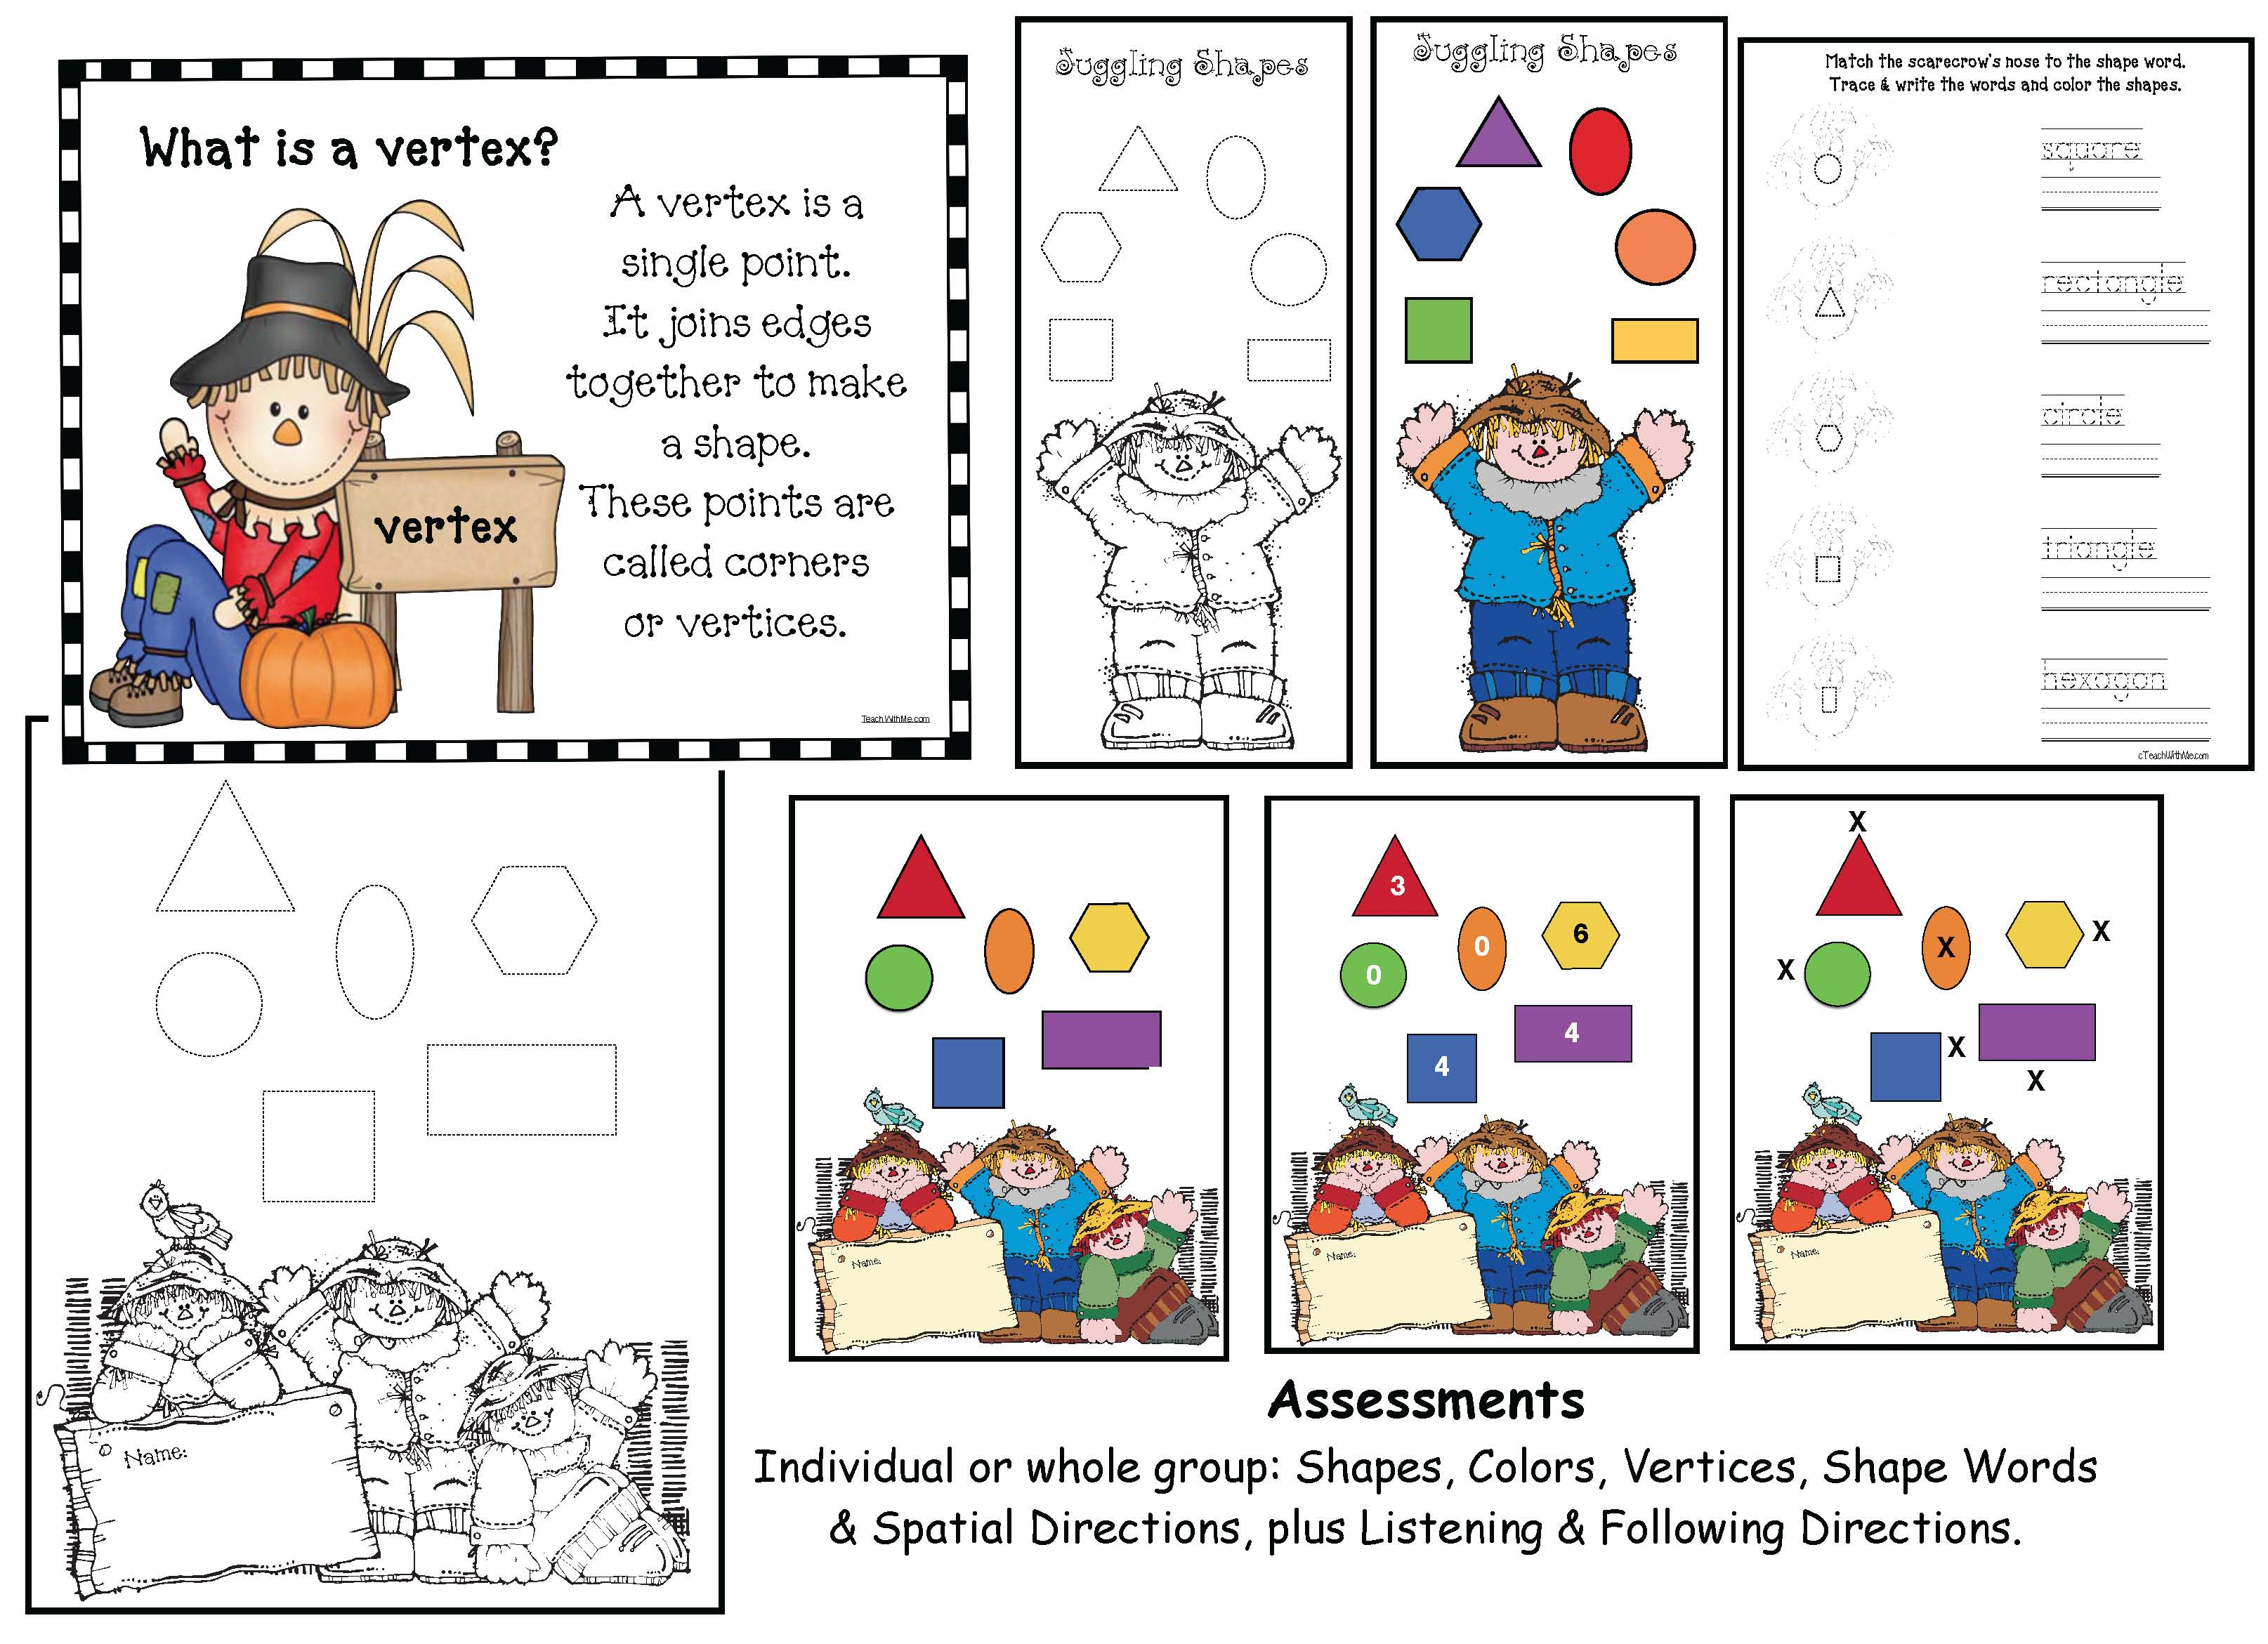 scarecrow crafts, scarecrow activities, shape activities, shape crafts, shape assessments, fall centers, owl activities, emergent reader booklets, owl activities, owl crafts, shape games, shape assessments